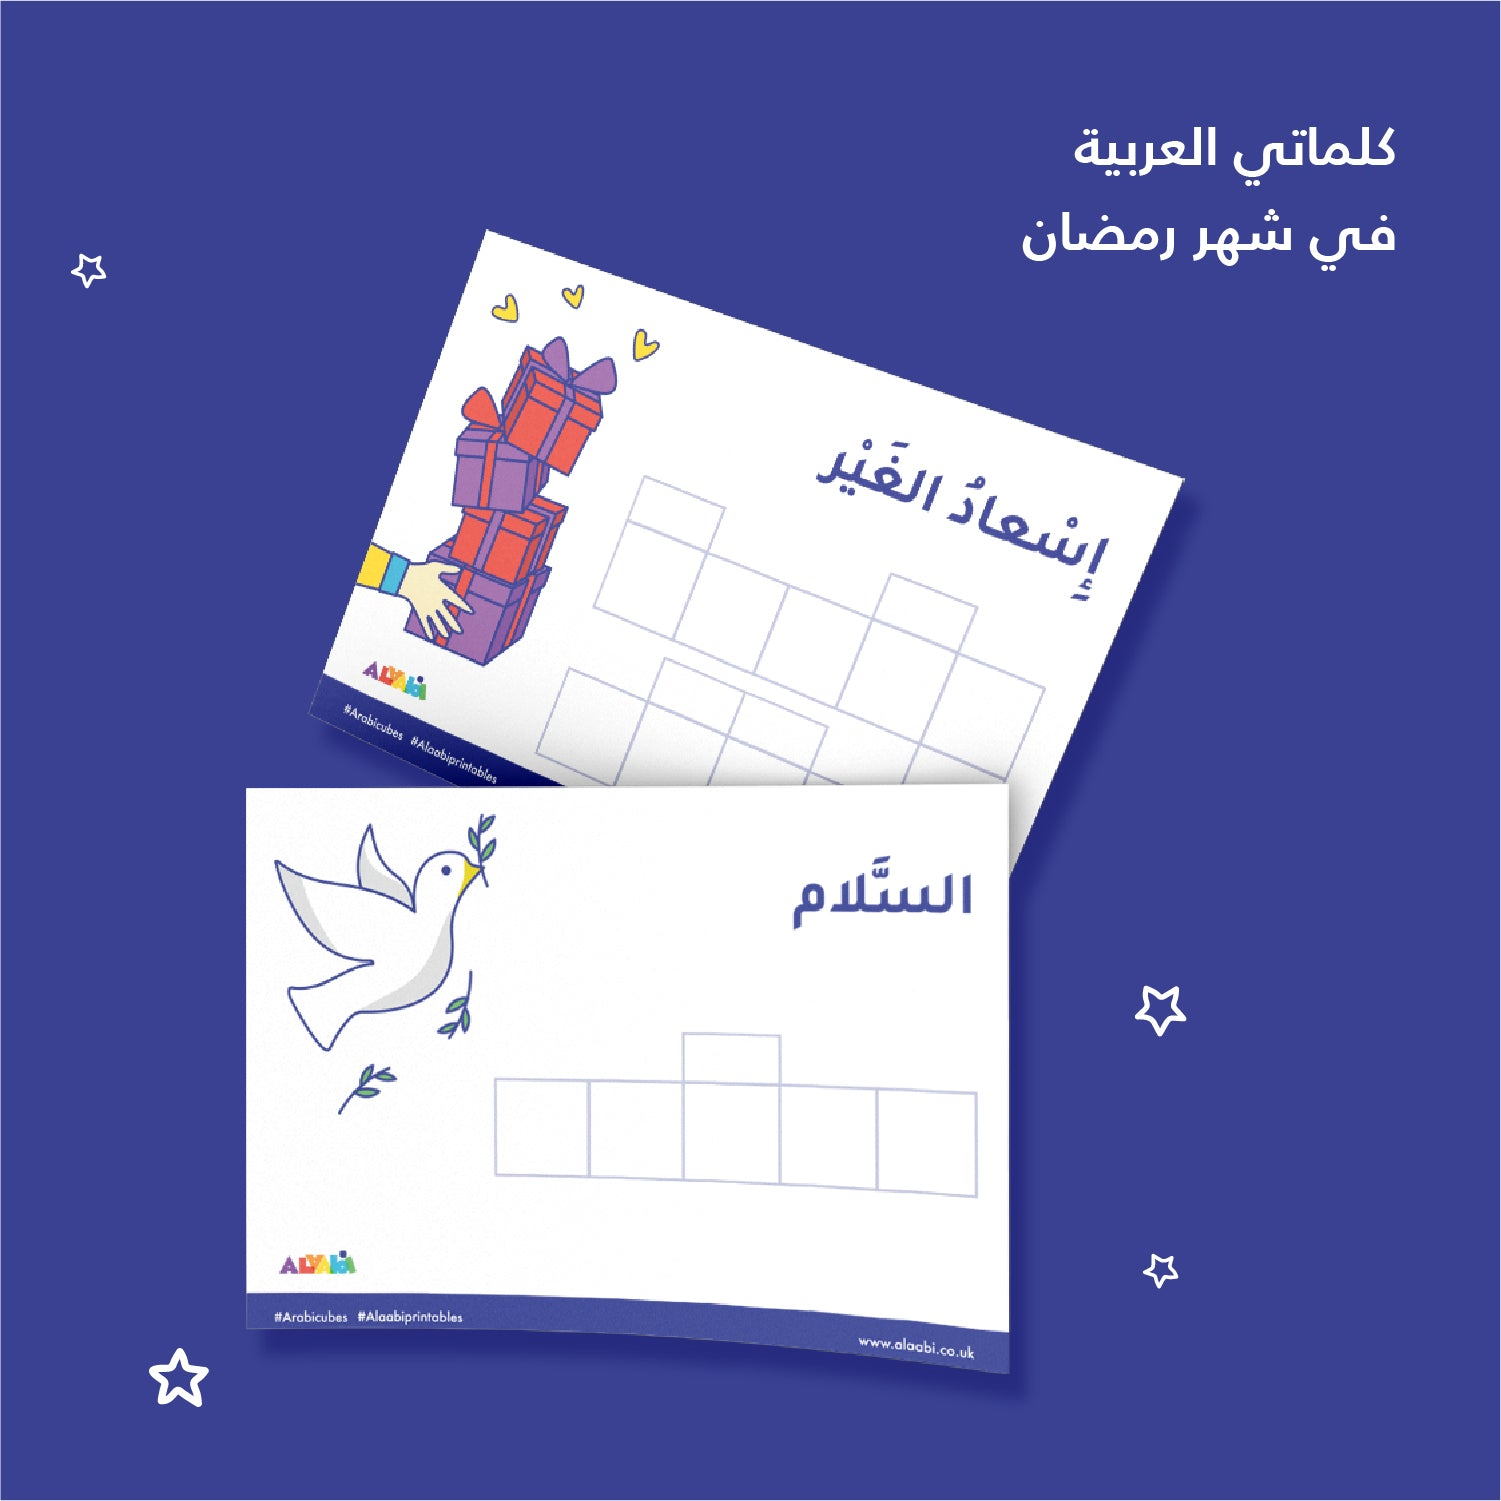 Ramadan رمضان home learning homeschooling eid muslim arabicubes fun learning arabic